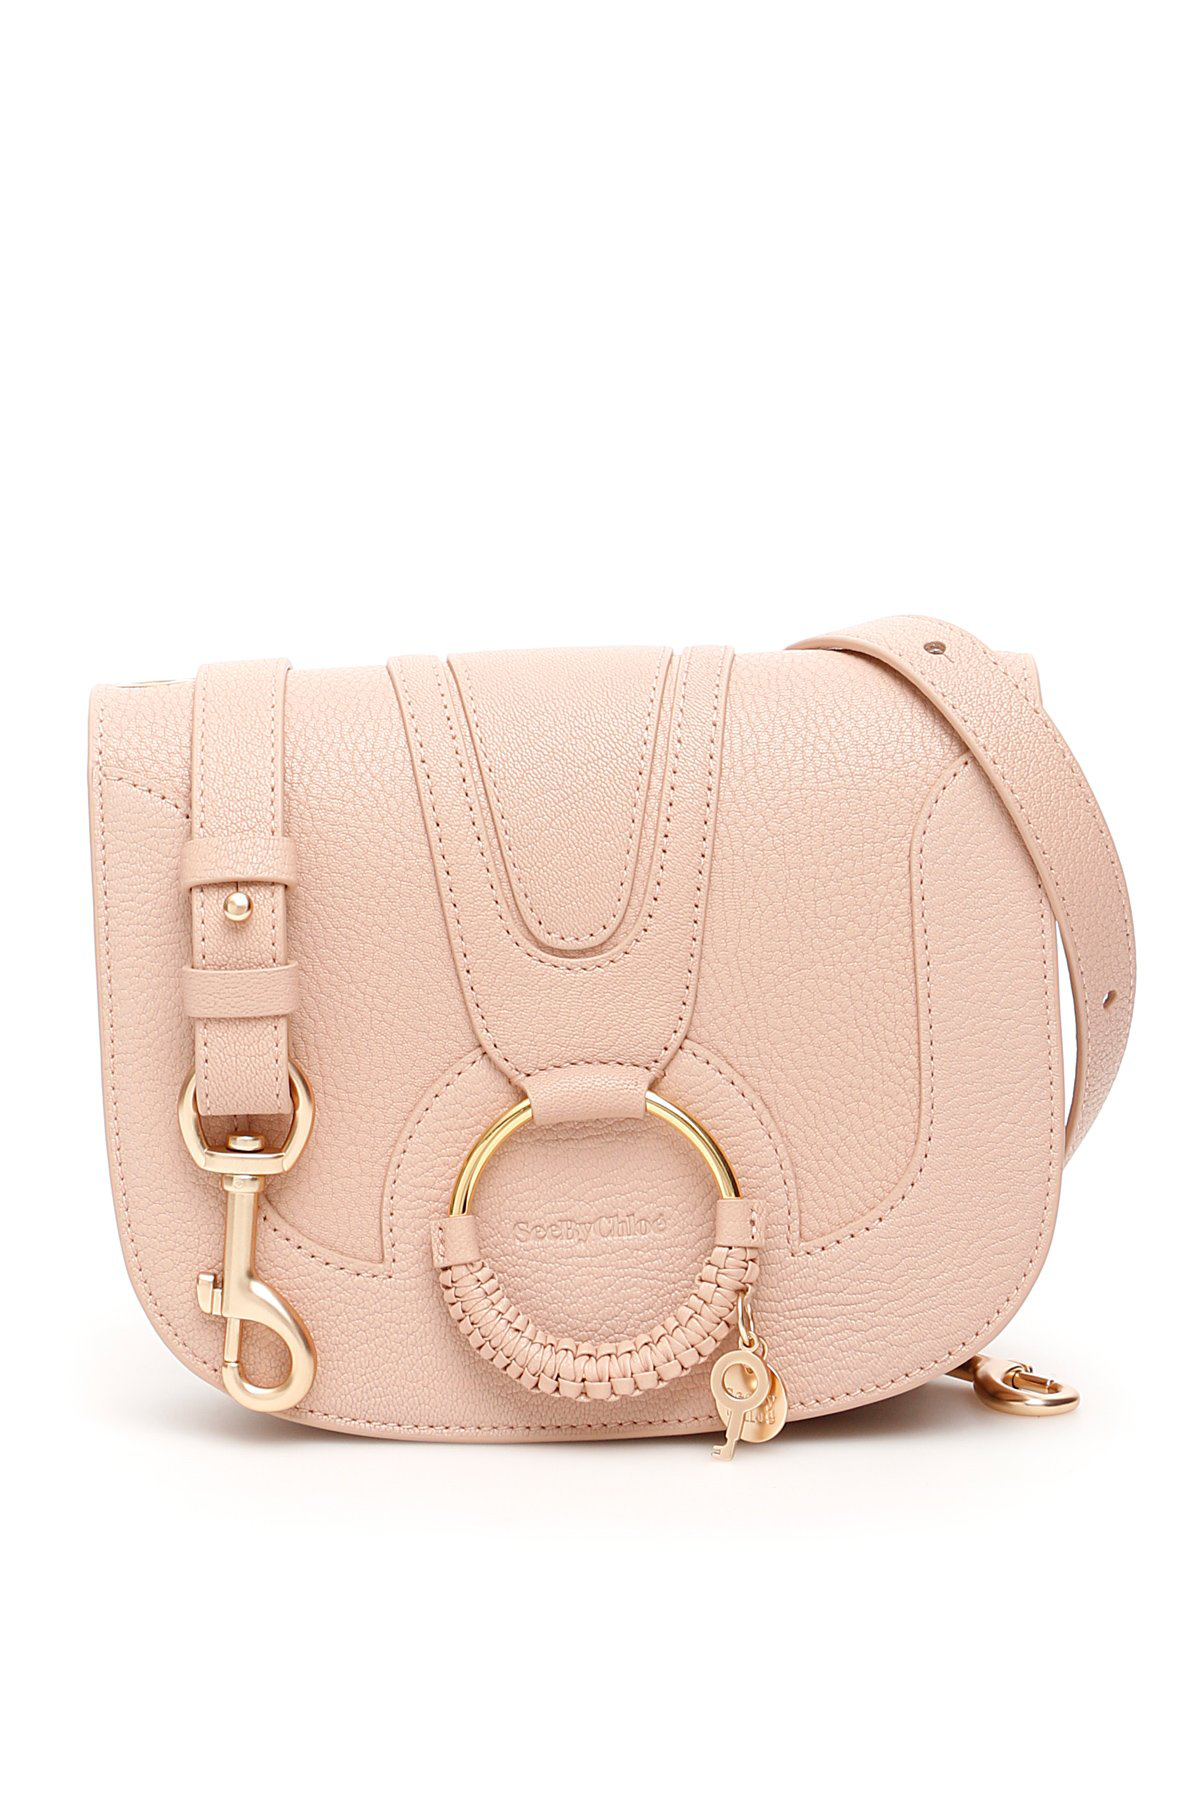 cfcc460c08c3 See By ChloÉ Hana Small Shoulder Bag In Pink